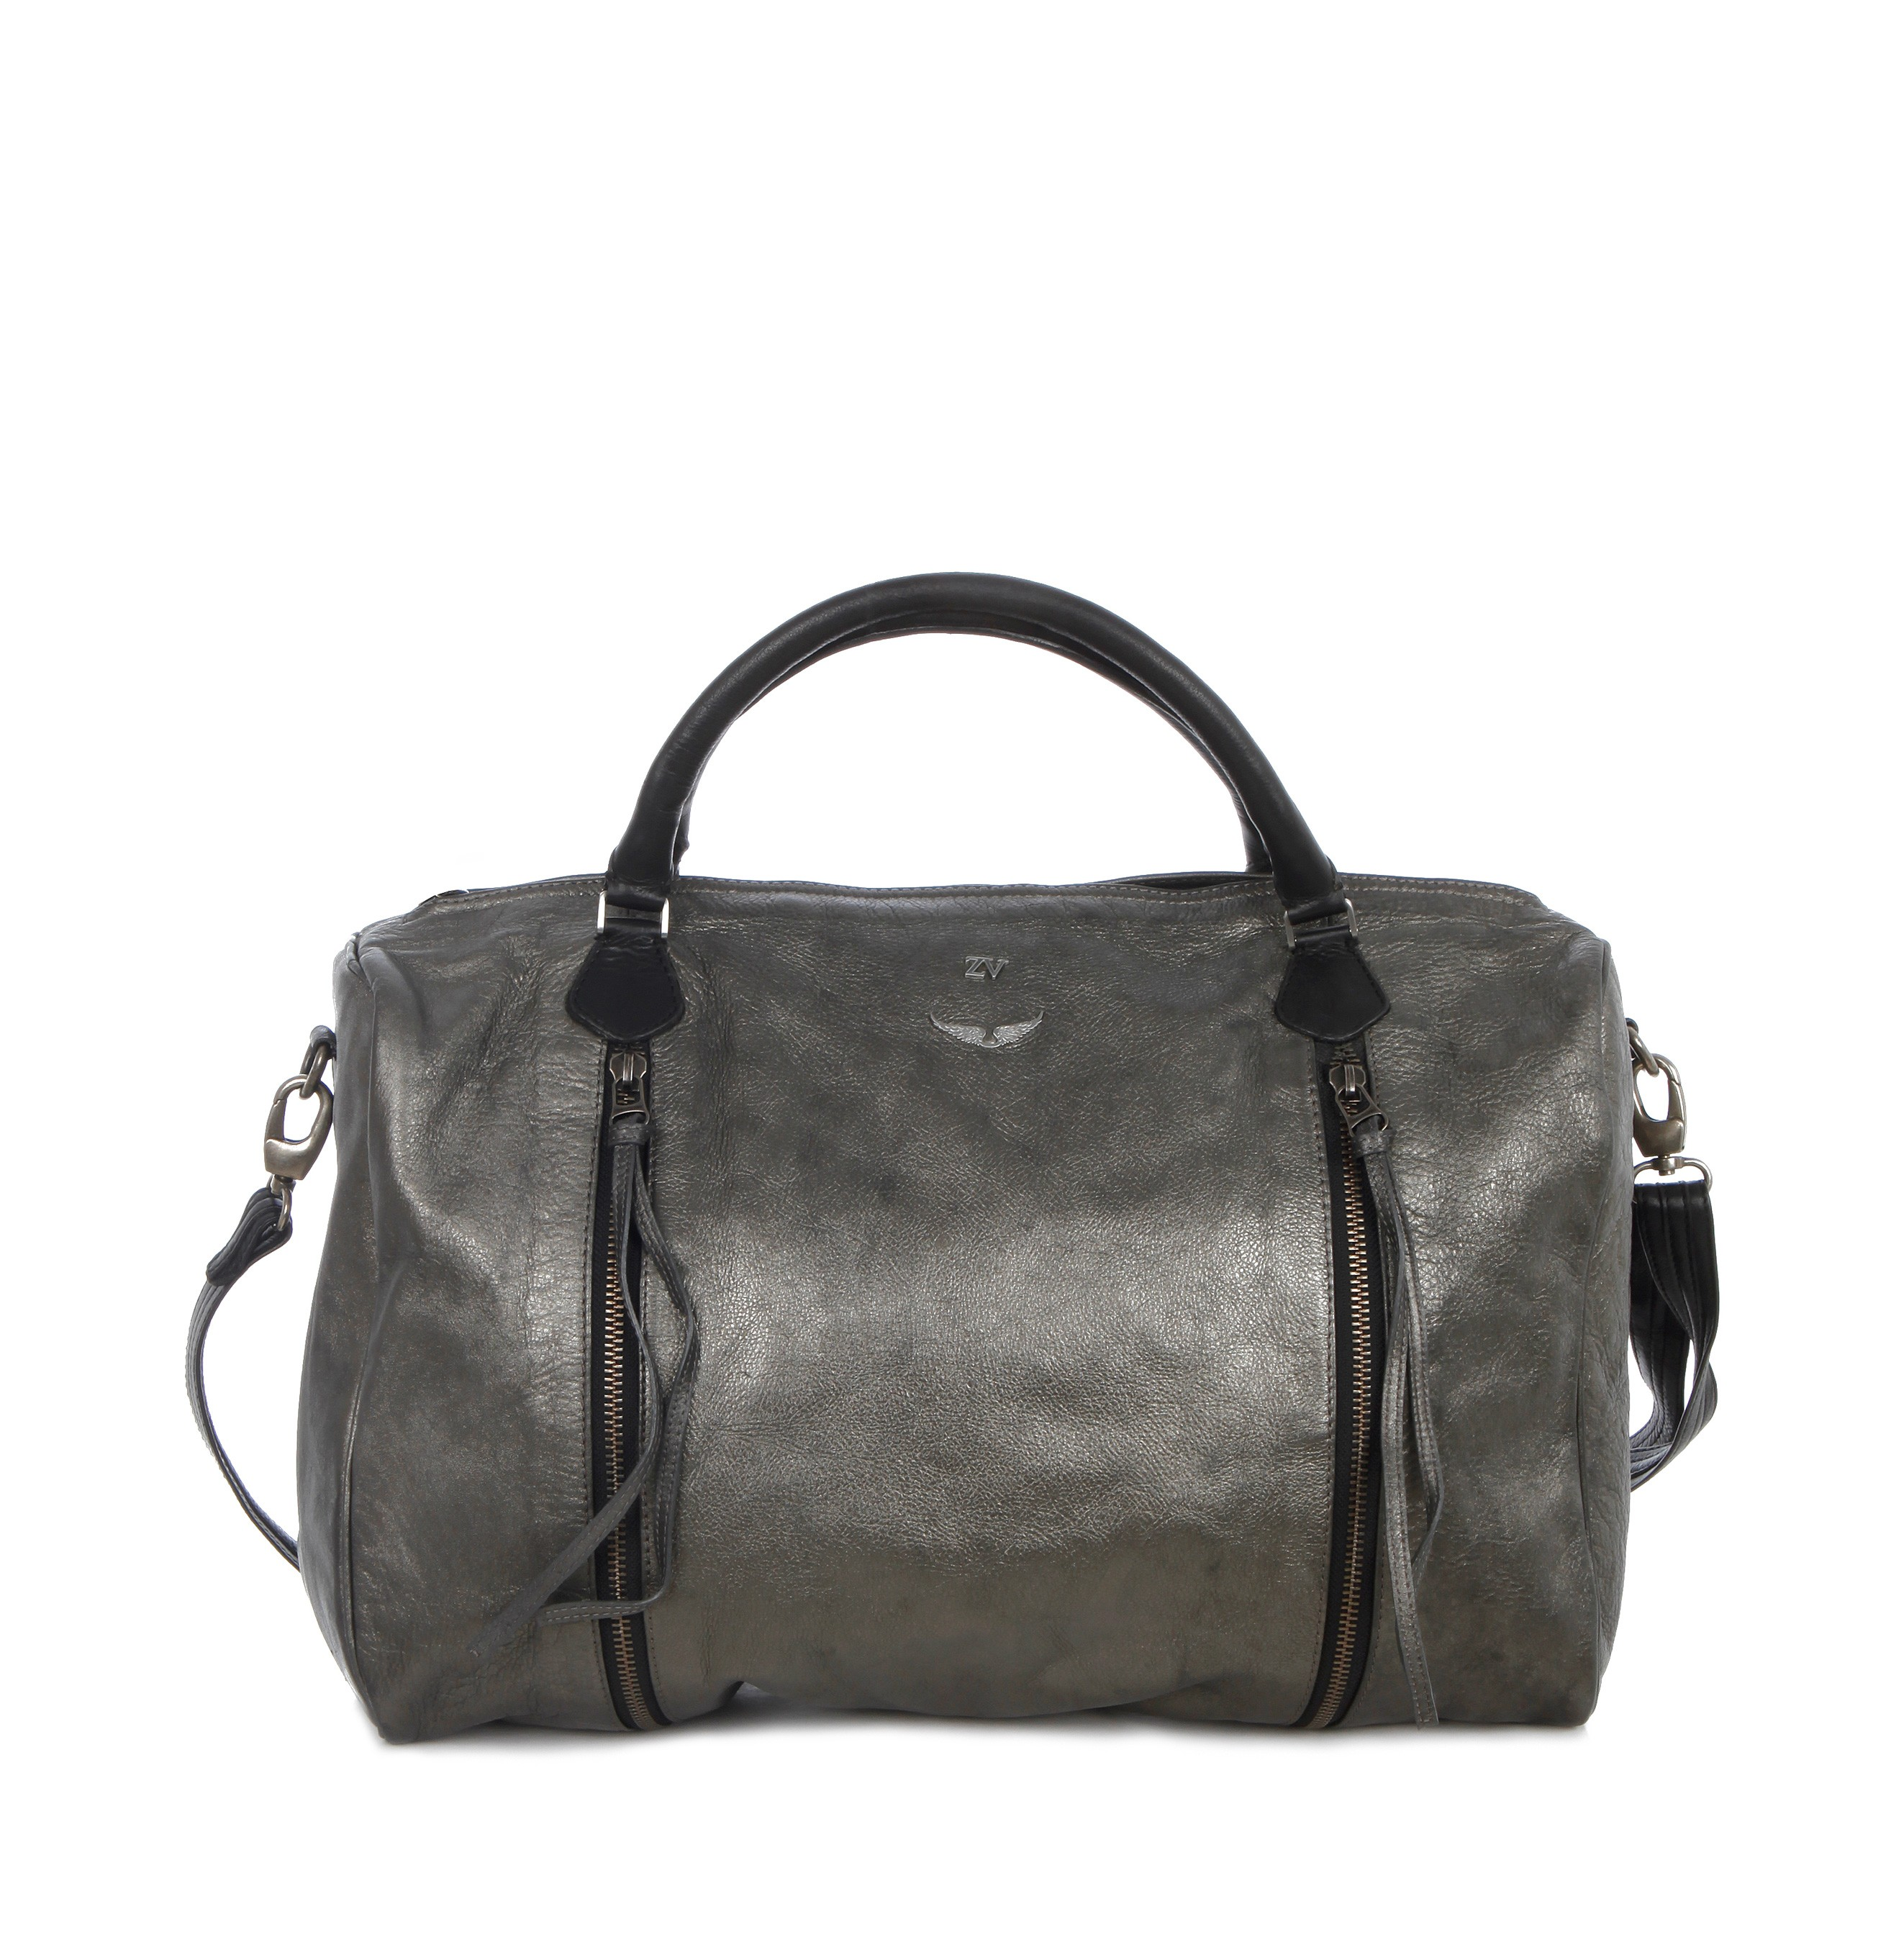 sac a main rugby. Imitation sac pochette louisa zadig voltaire